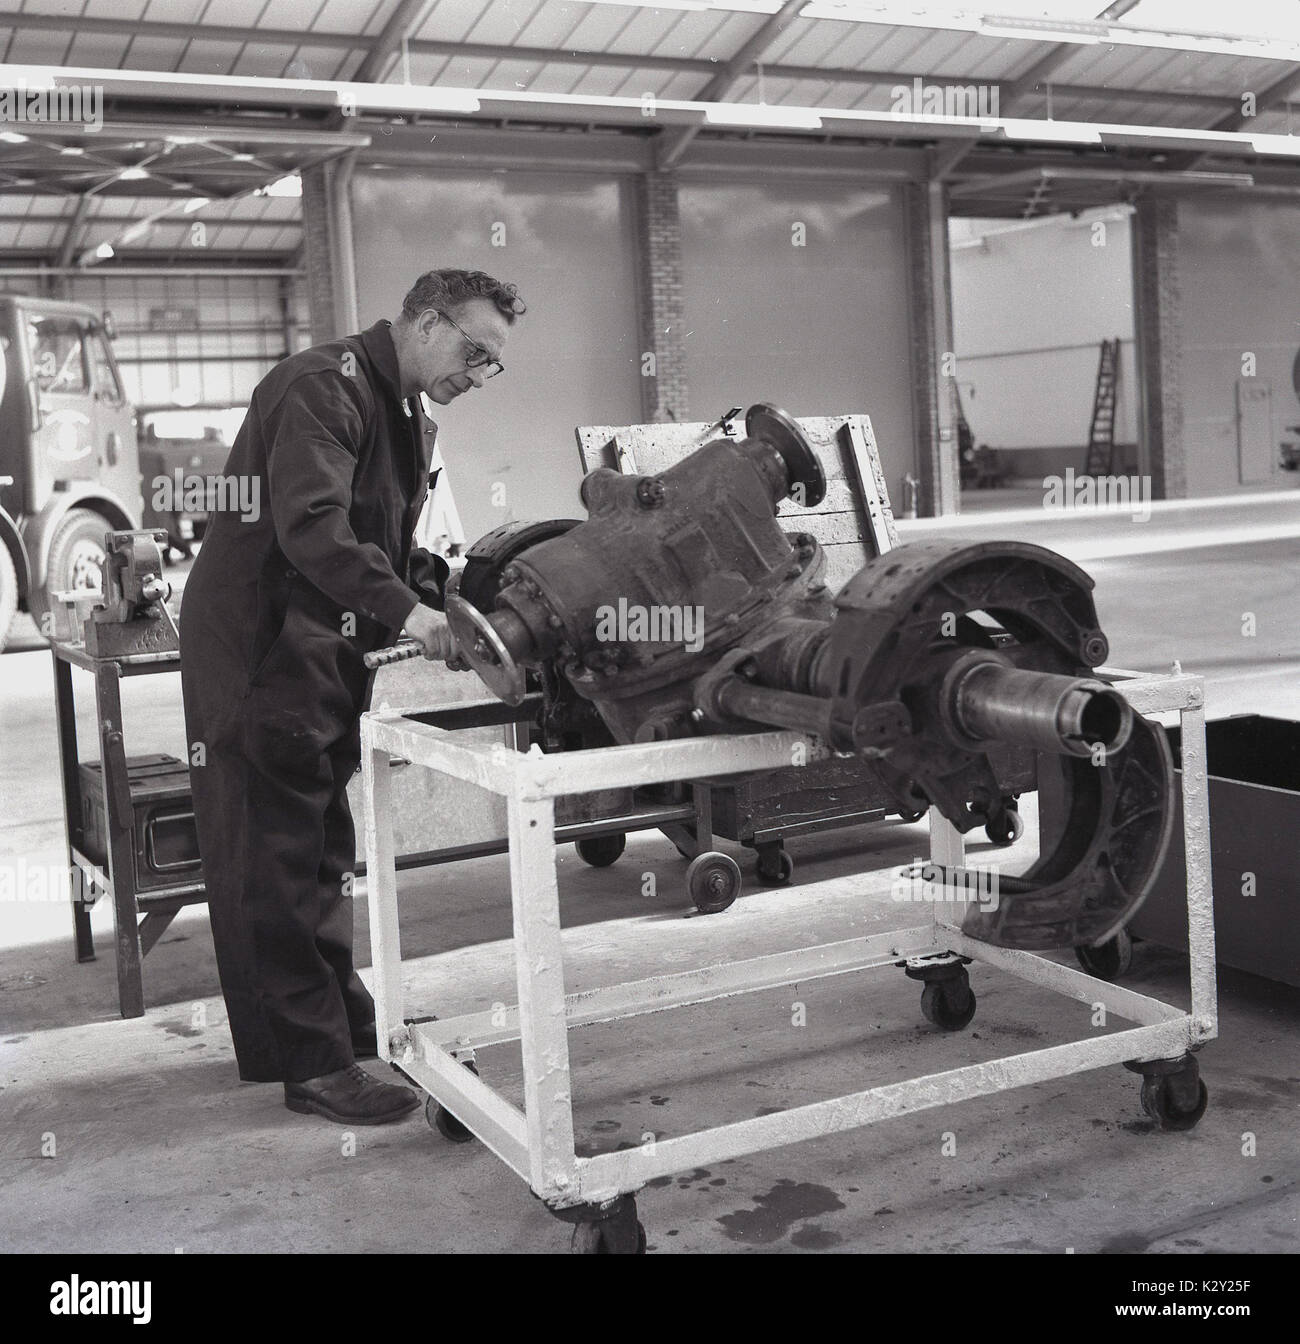 1960s, historical, male motor mechanic checking a large heavy front truck axle and associated parts inside a workshop, England, UK. - Stock Image